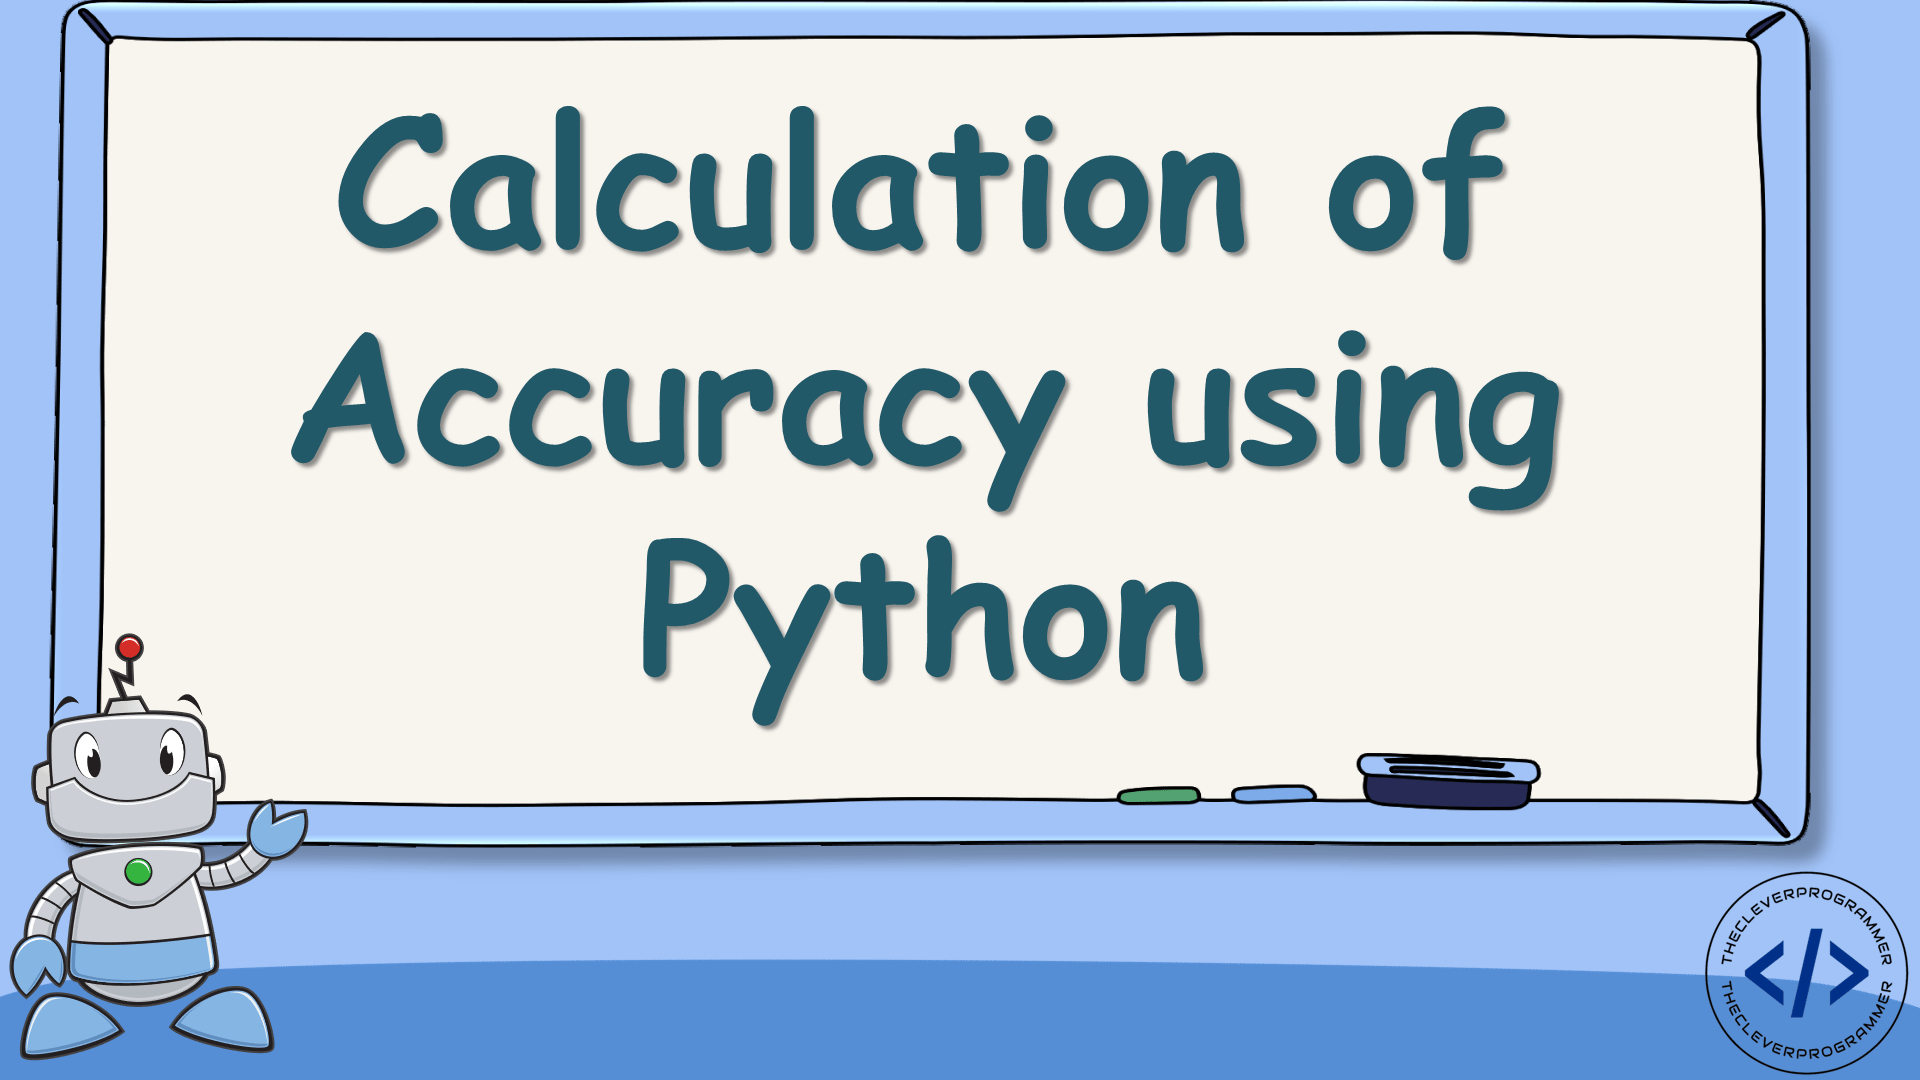 Calculation of Accuracy using Python